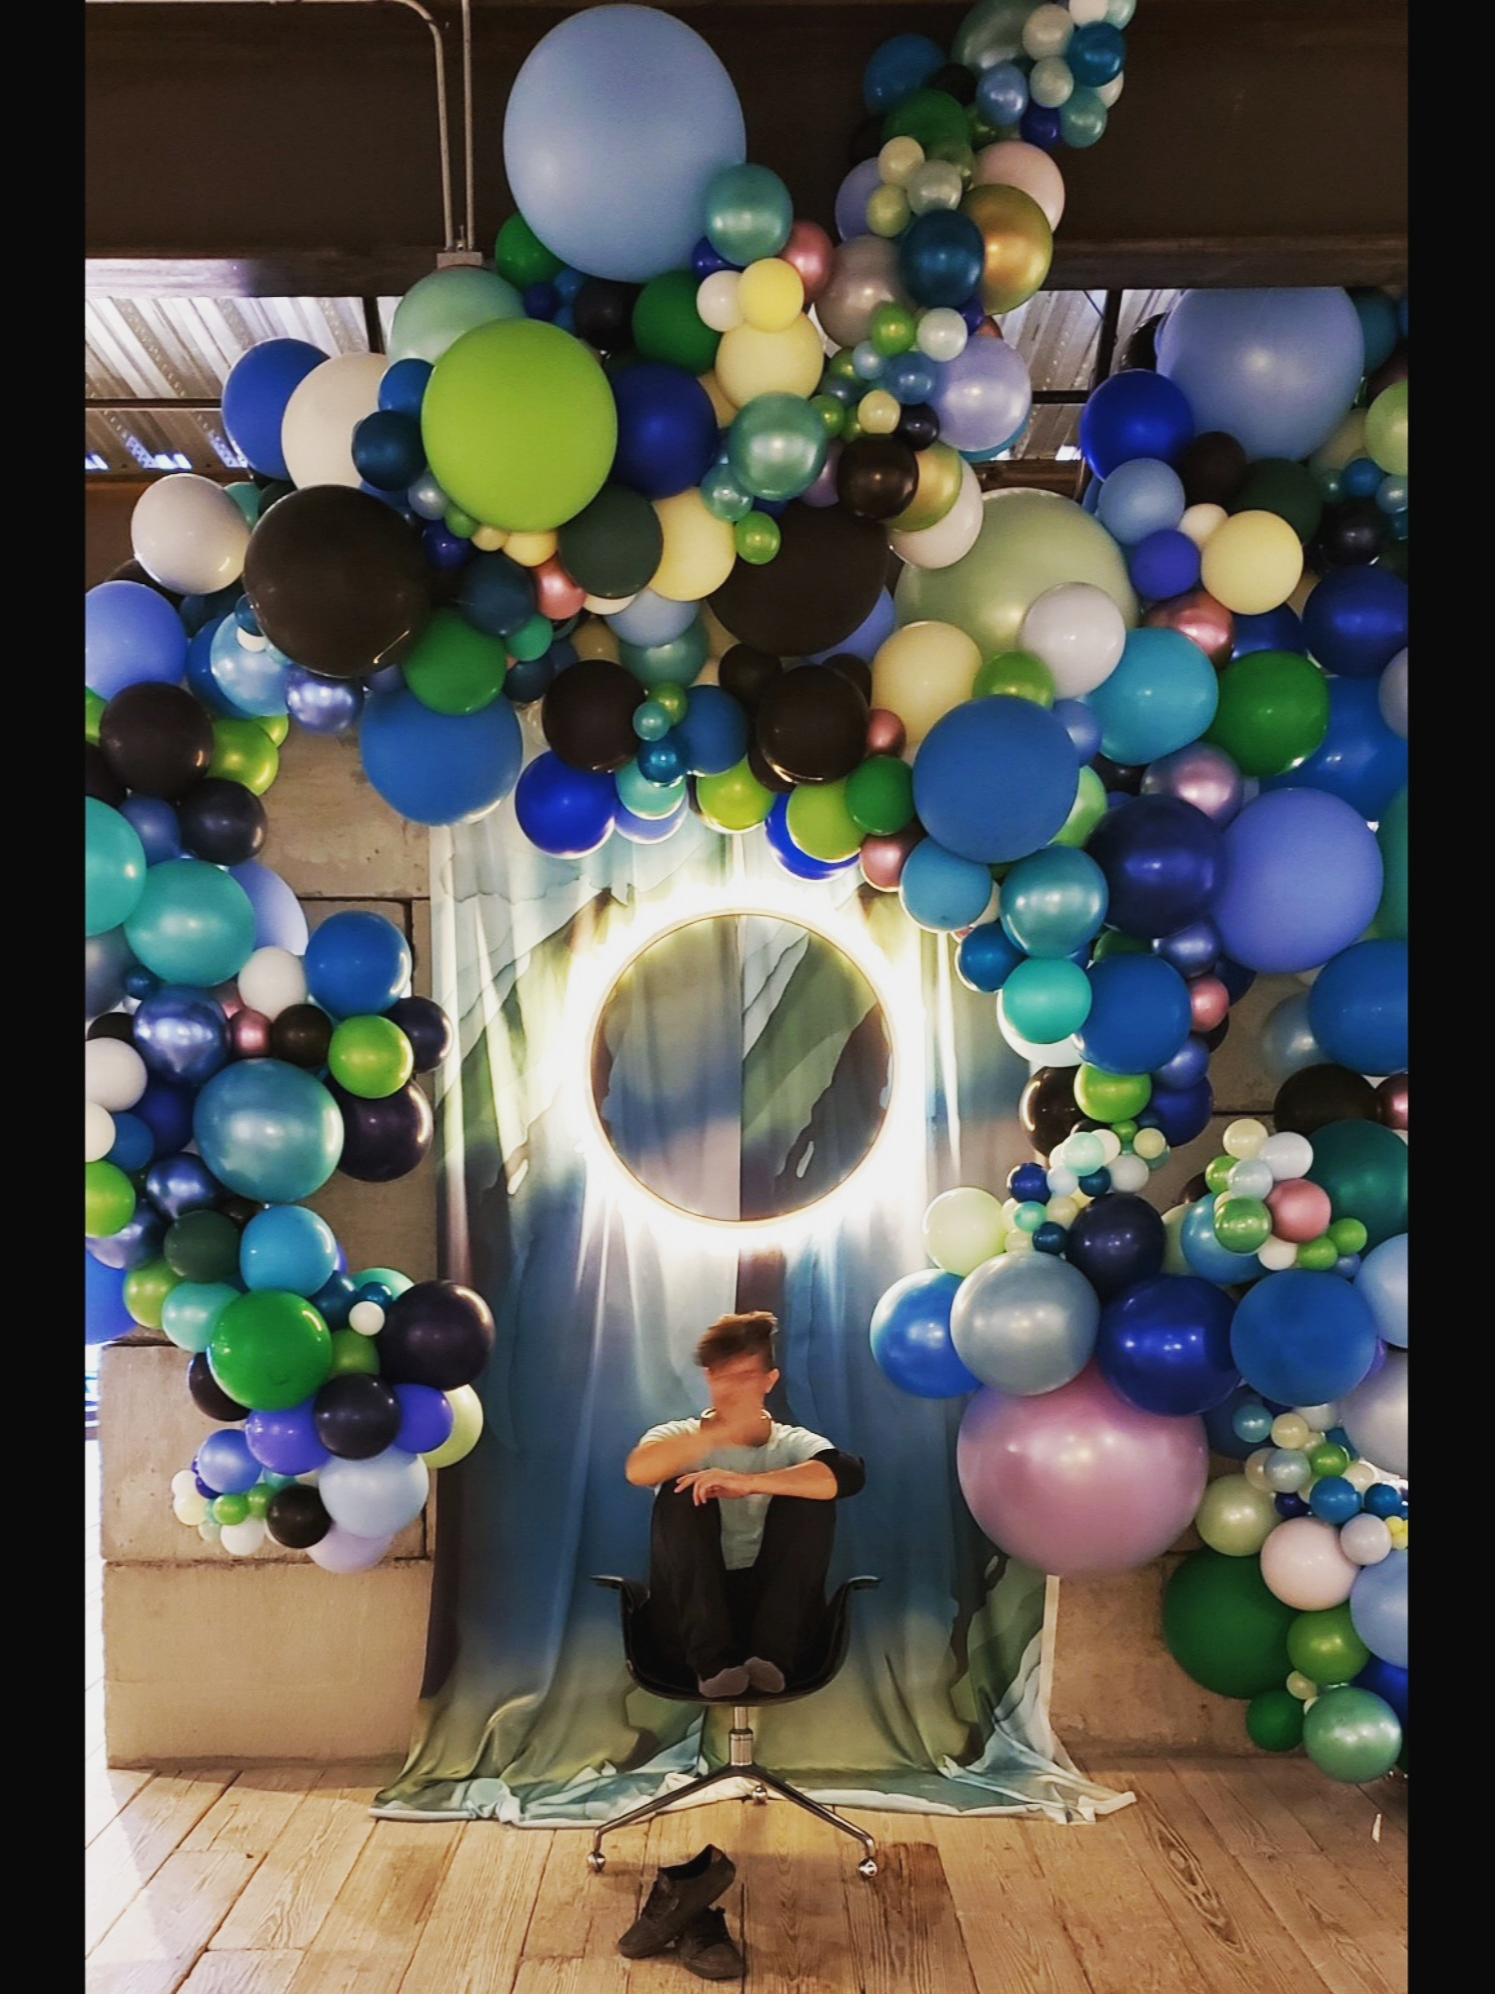 SF Balloon Delivery - Organic Balloon Installation - Zim Balloons.jpg